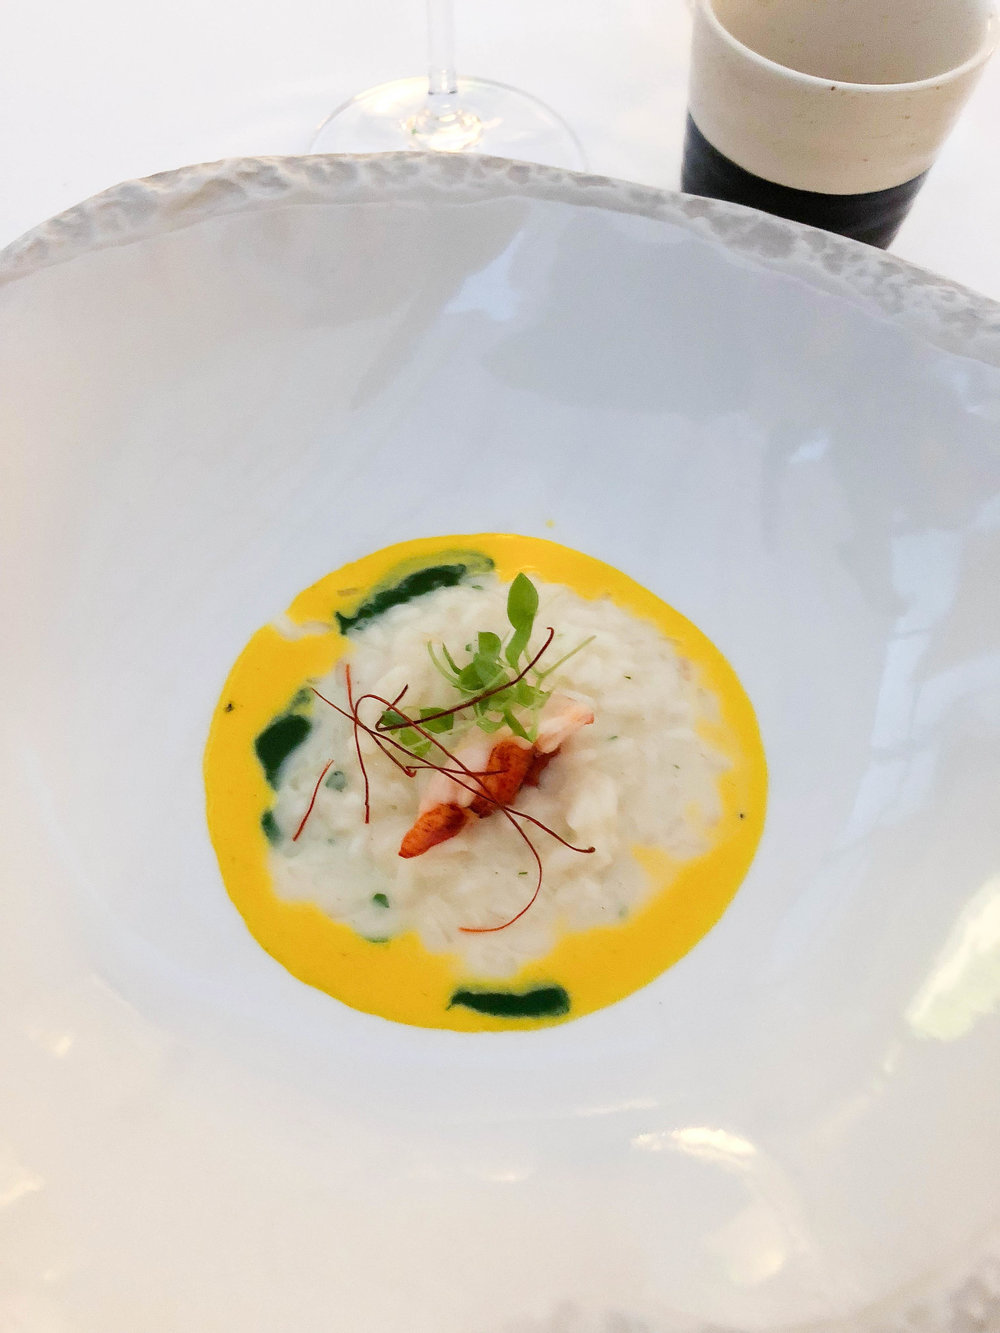 Lobster rice with saffron sauce. It was served with a cup of hot bouillabaisse broth on the side.